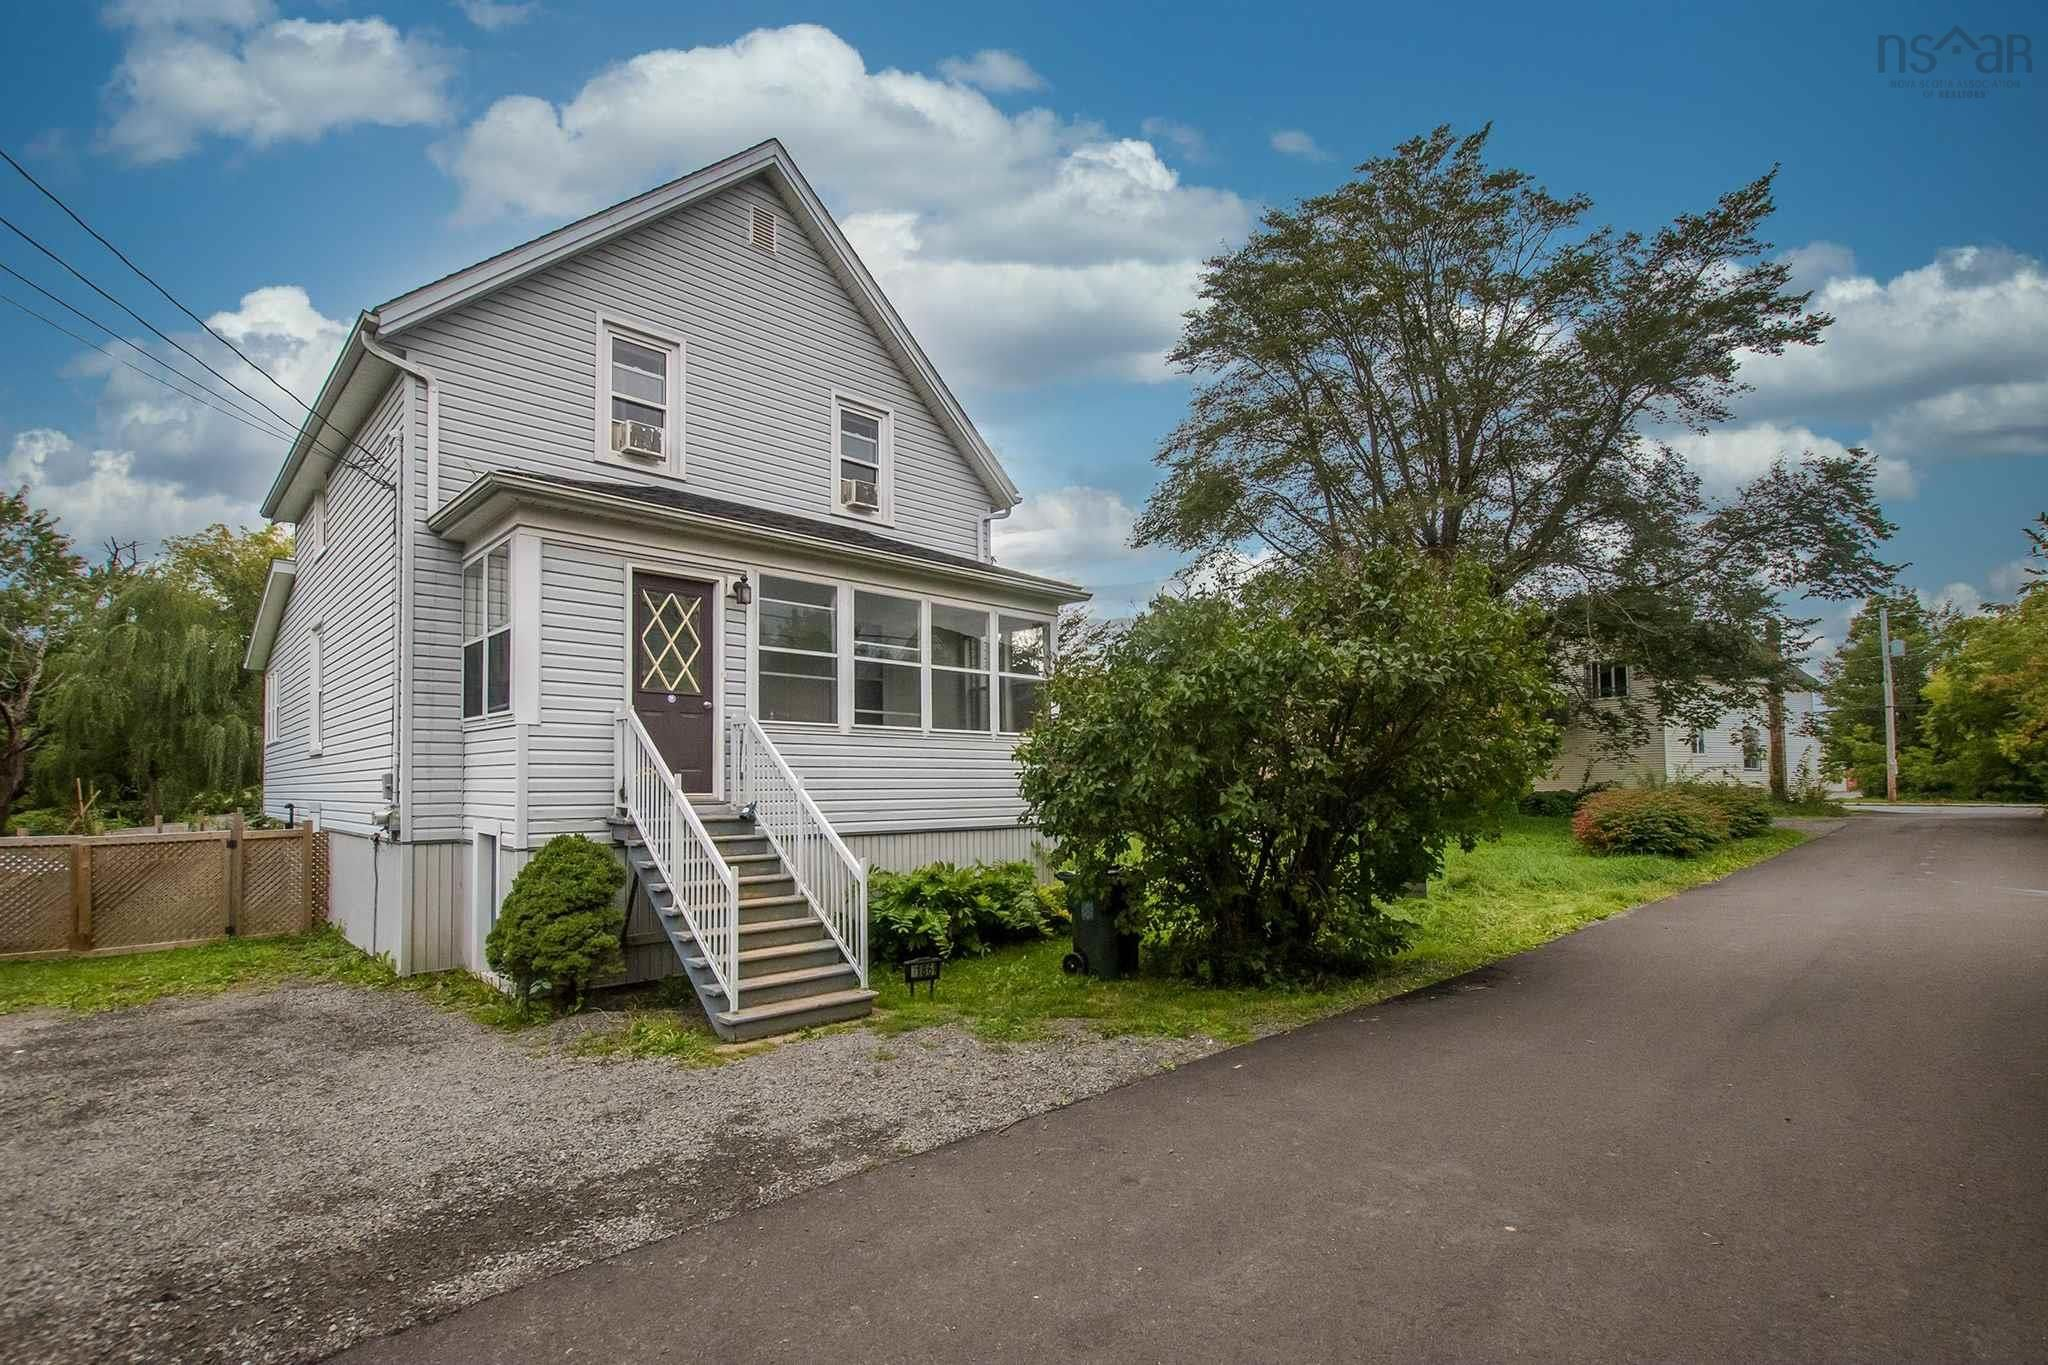 Main Photo: 186 Munroe Street in Windsor: 403-Hants County Residential for sale (Annapolis Valley)  : MLS®# 202123564